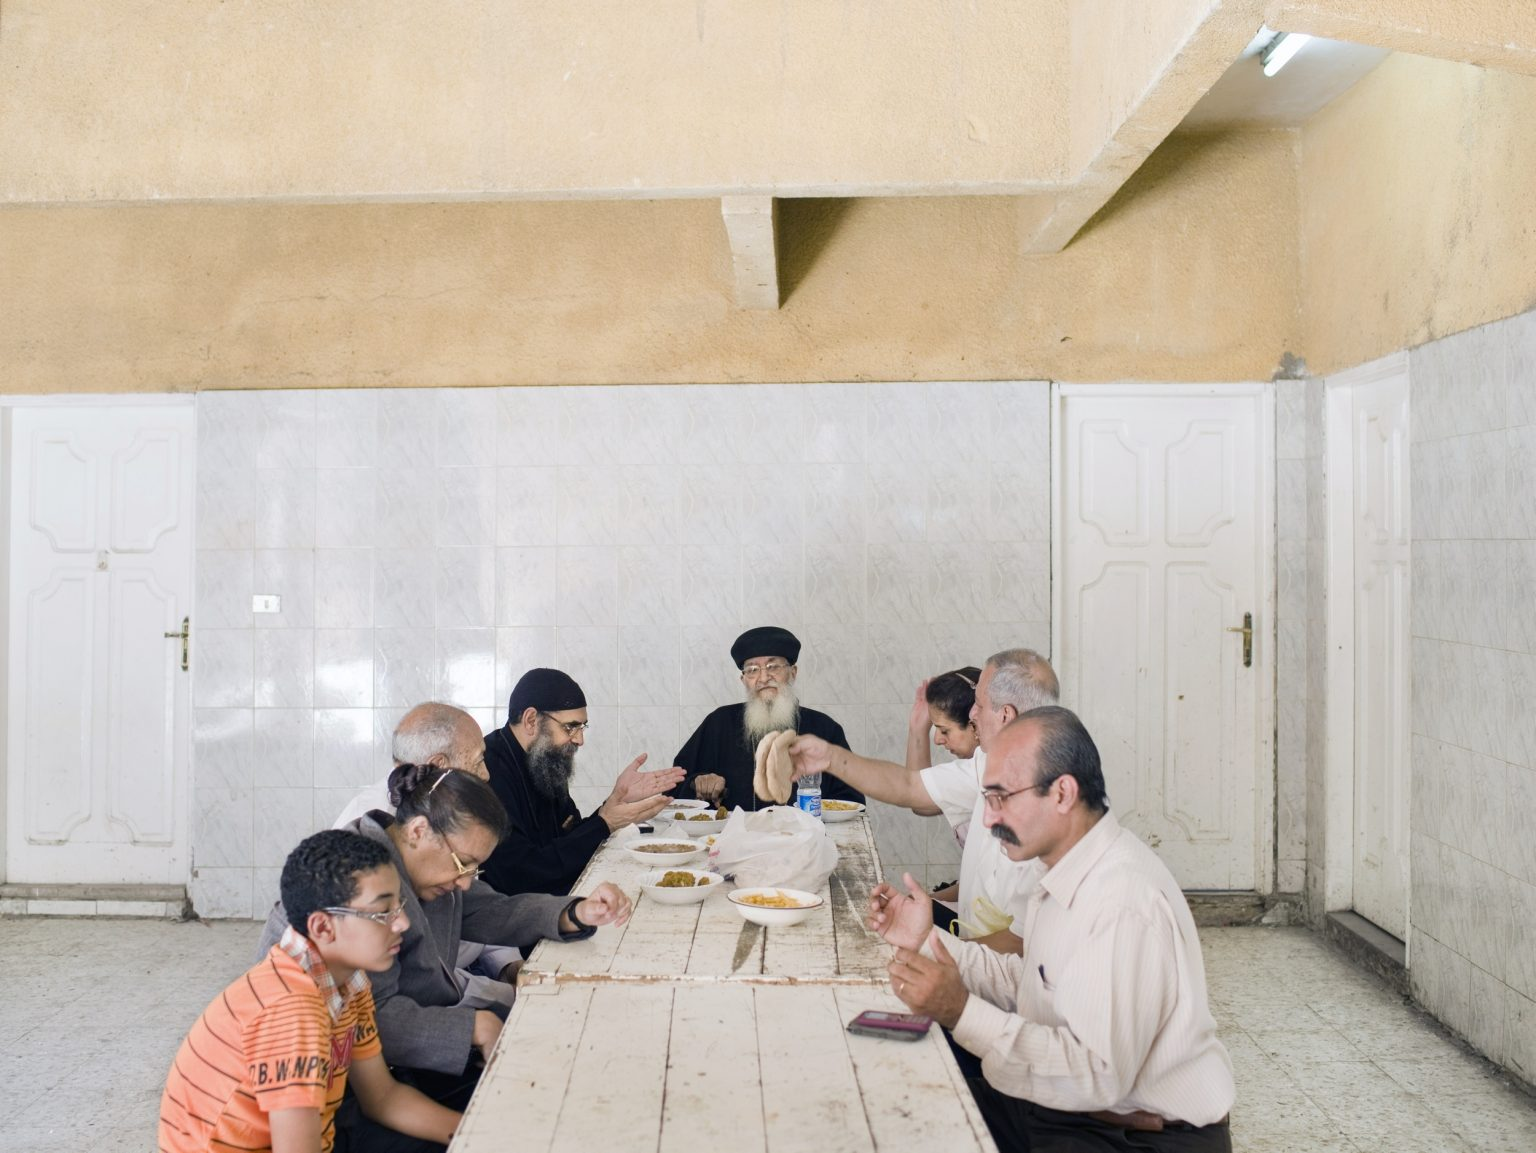 Coptic Christian family praying before lunch in the Coptic neighborhood in Cairo.